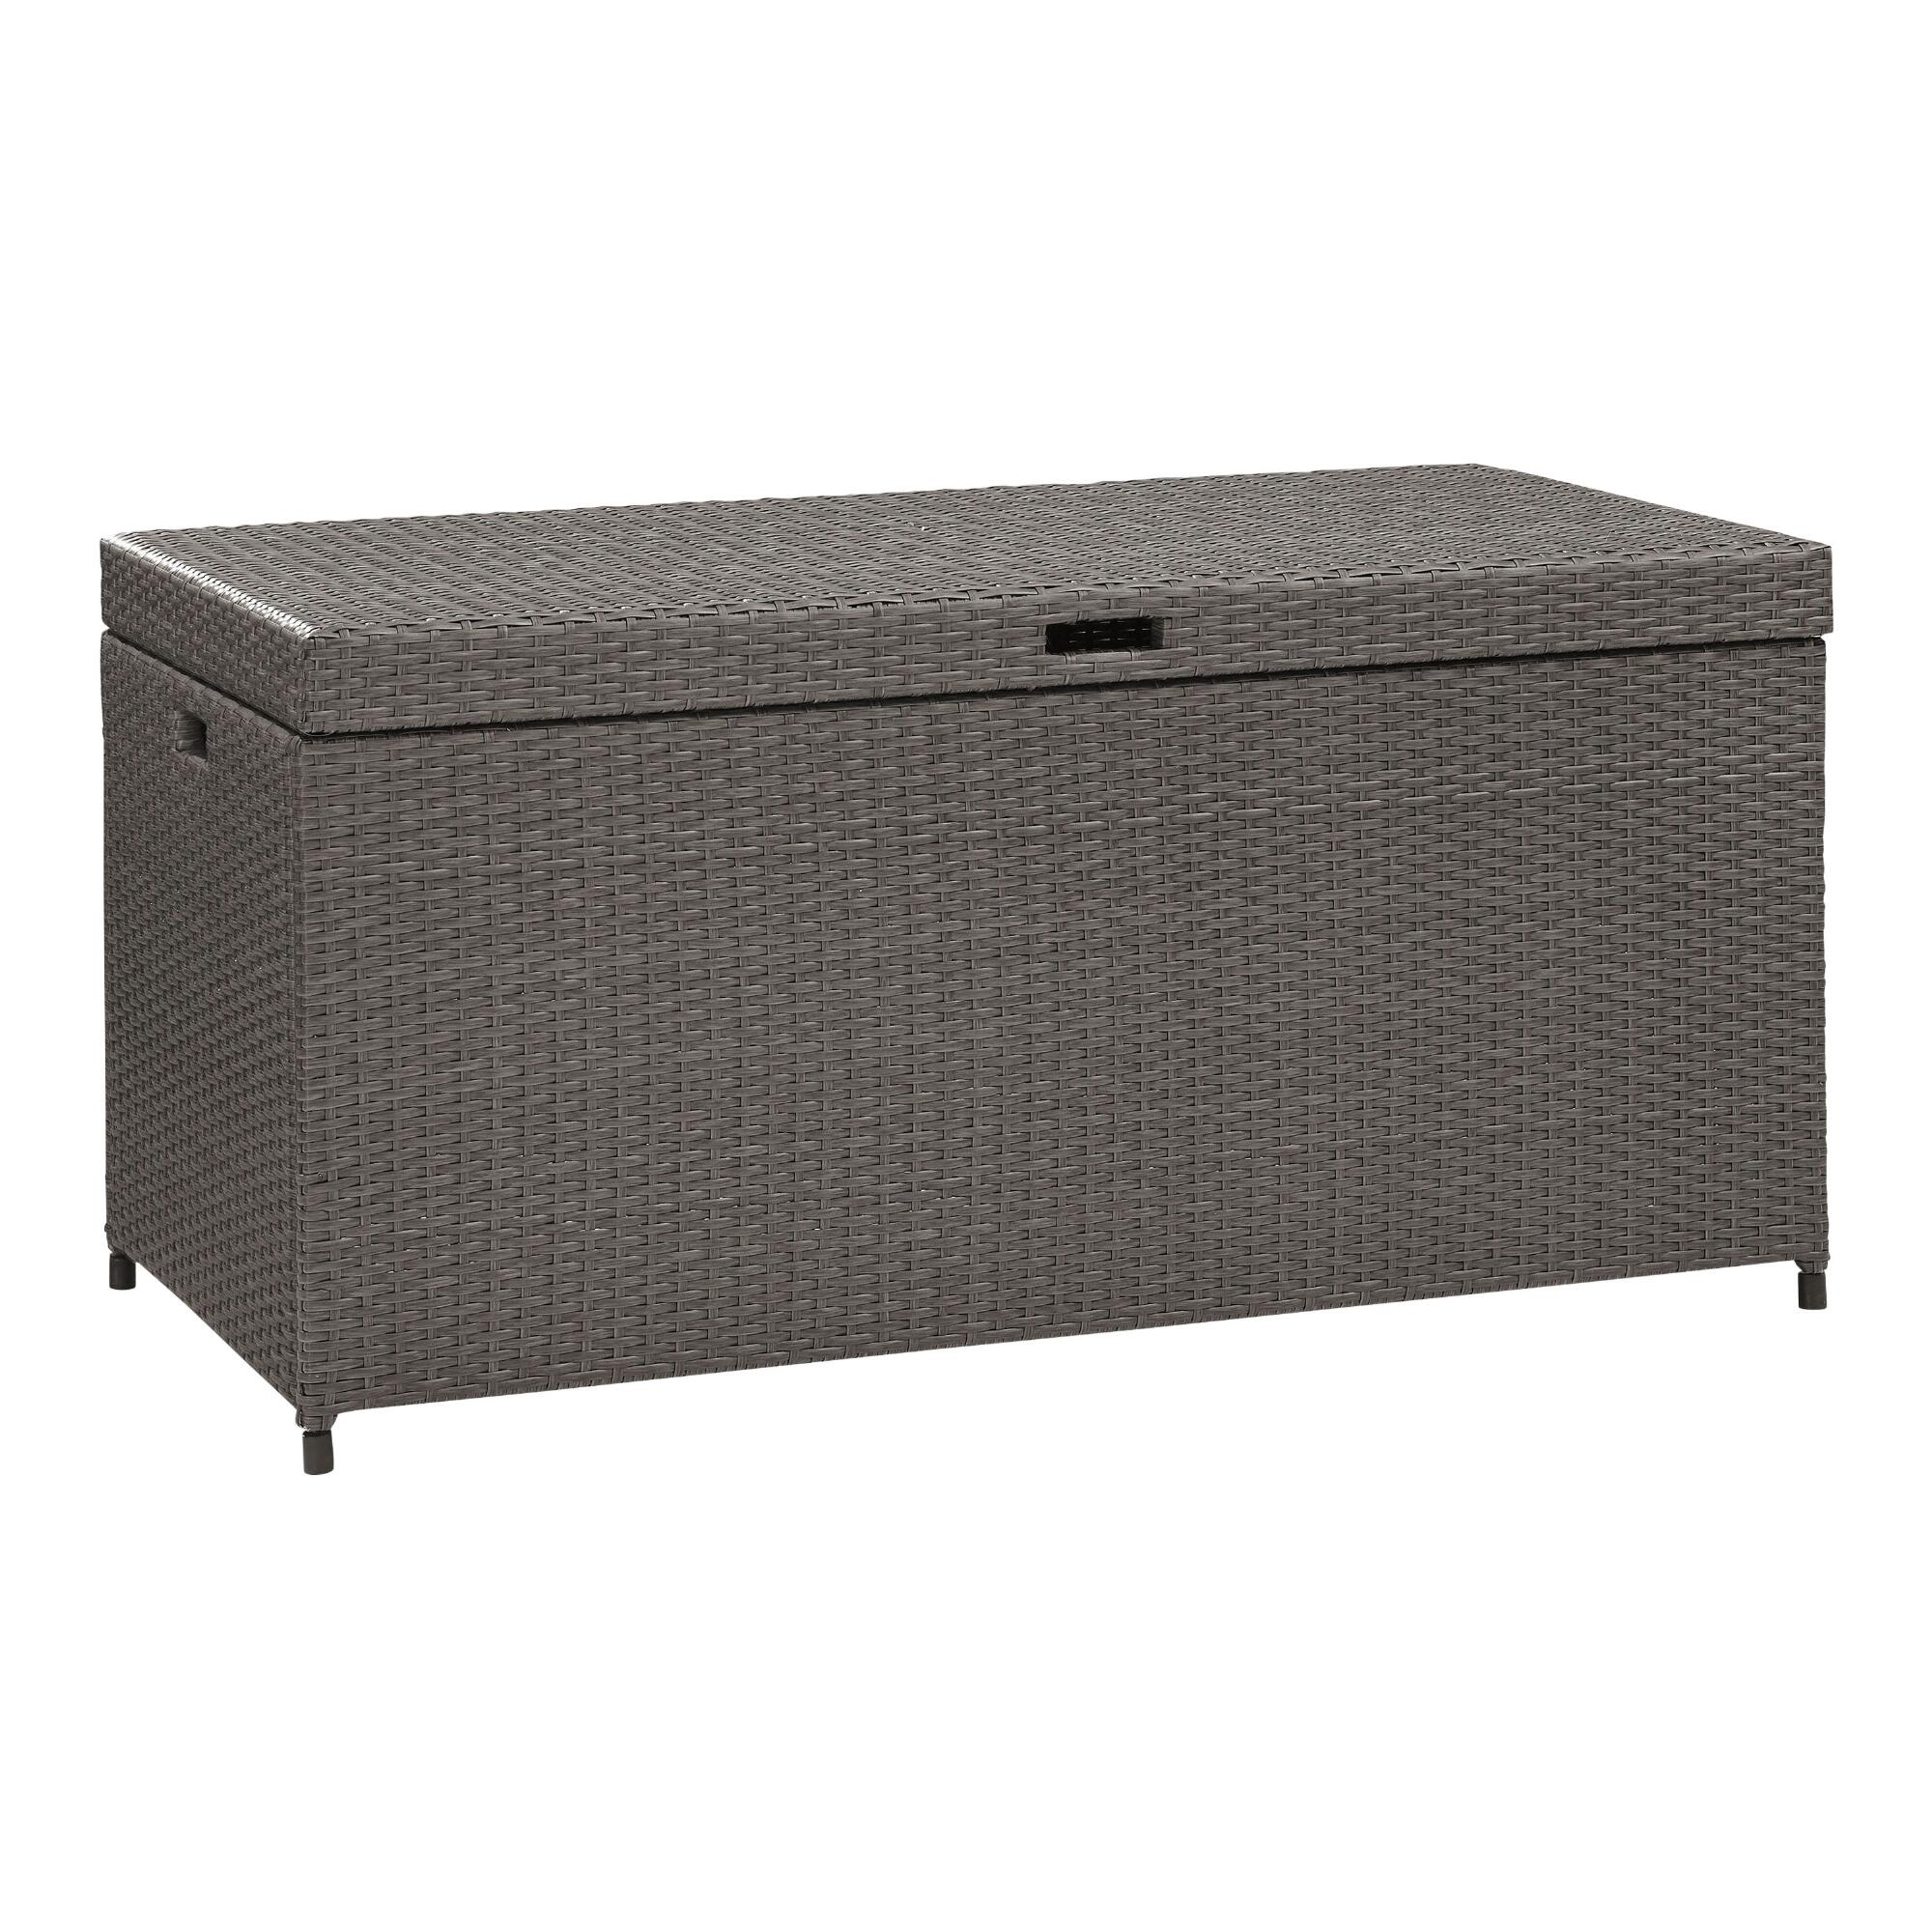 Gray All Weather Wicker Pinamar Outdoor Patio Storage Chest by World Market